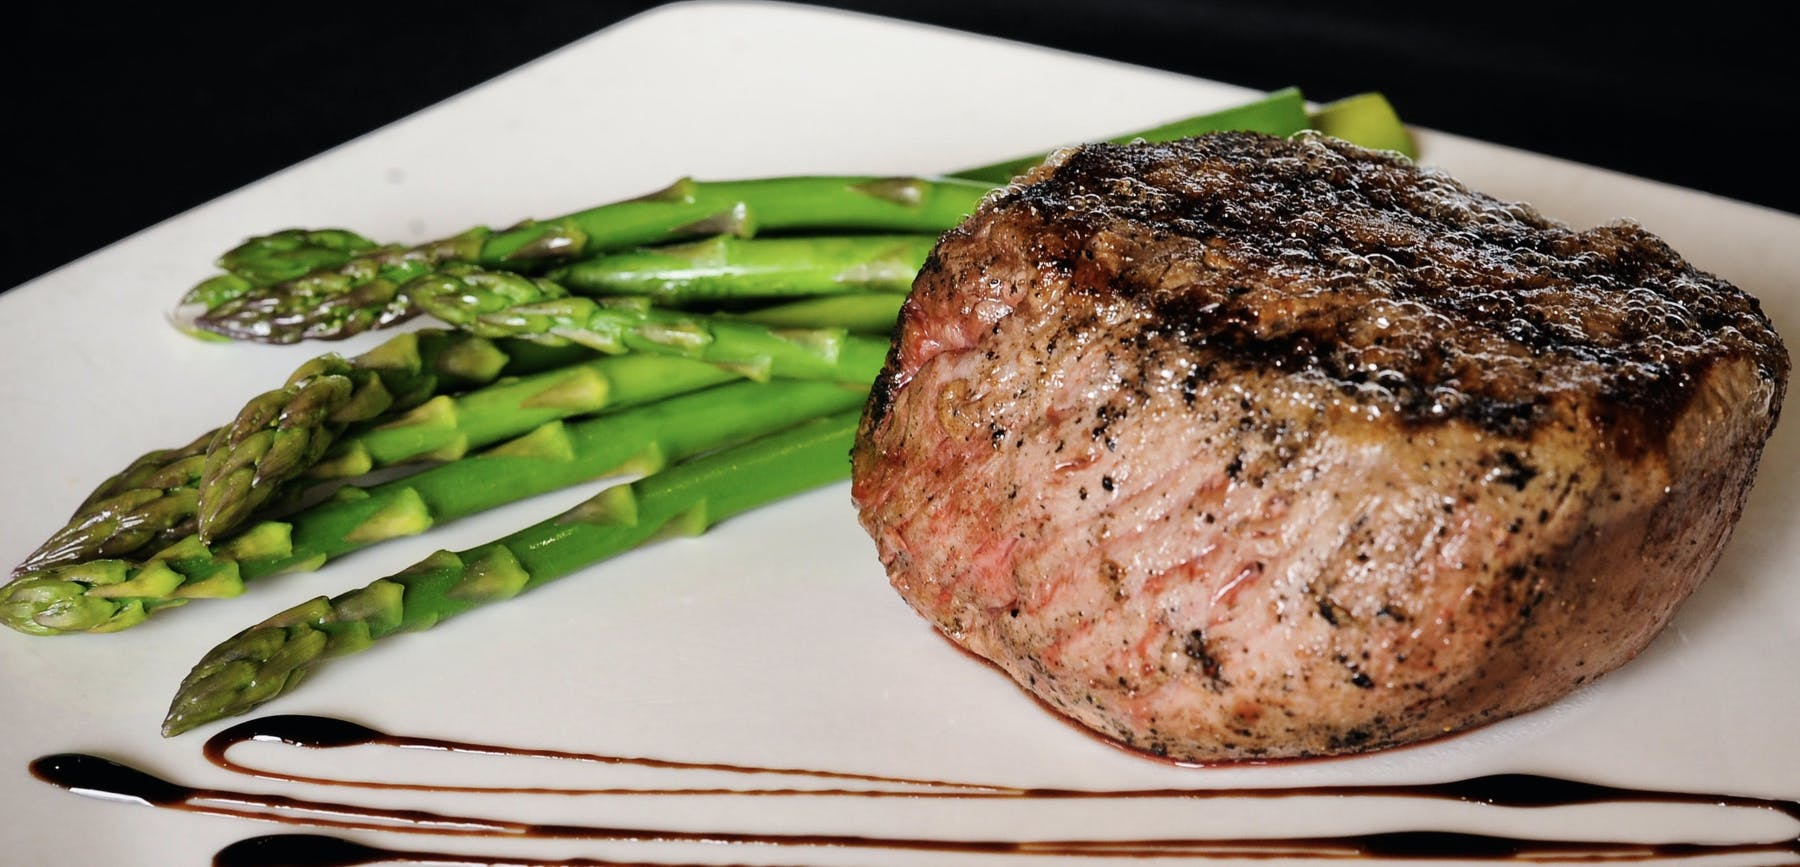 steak served with asparagus